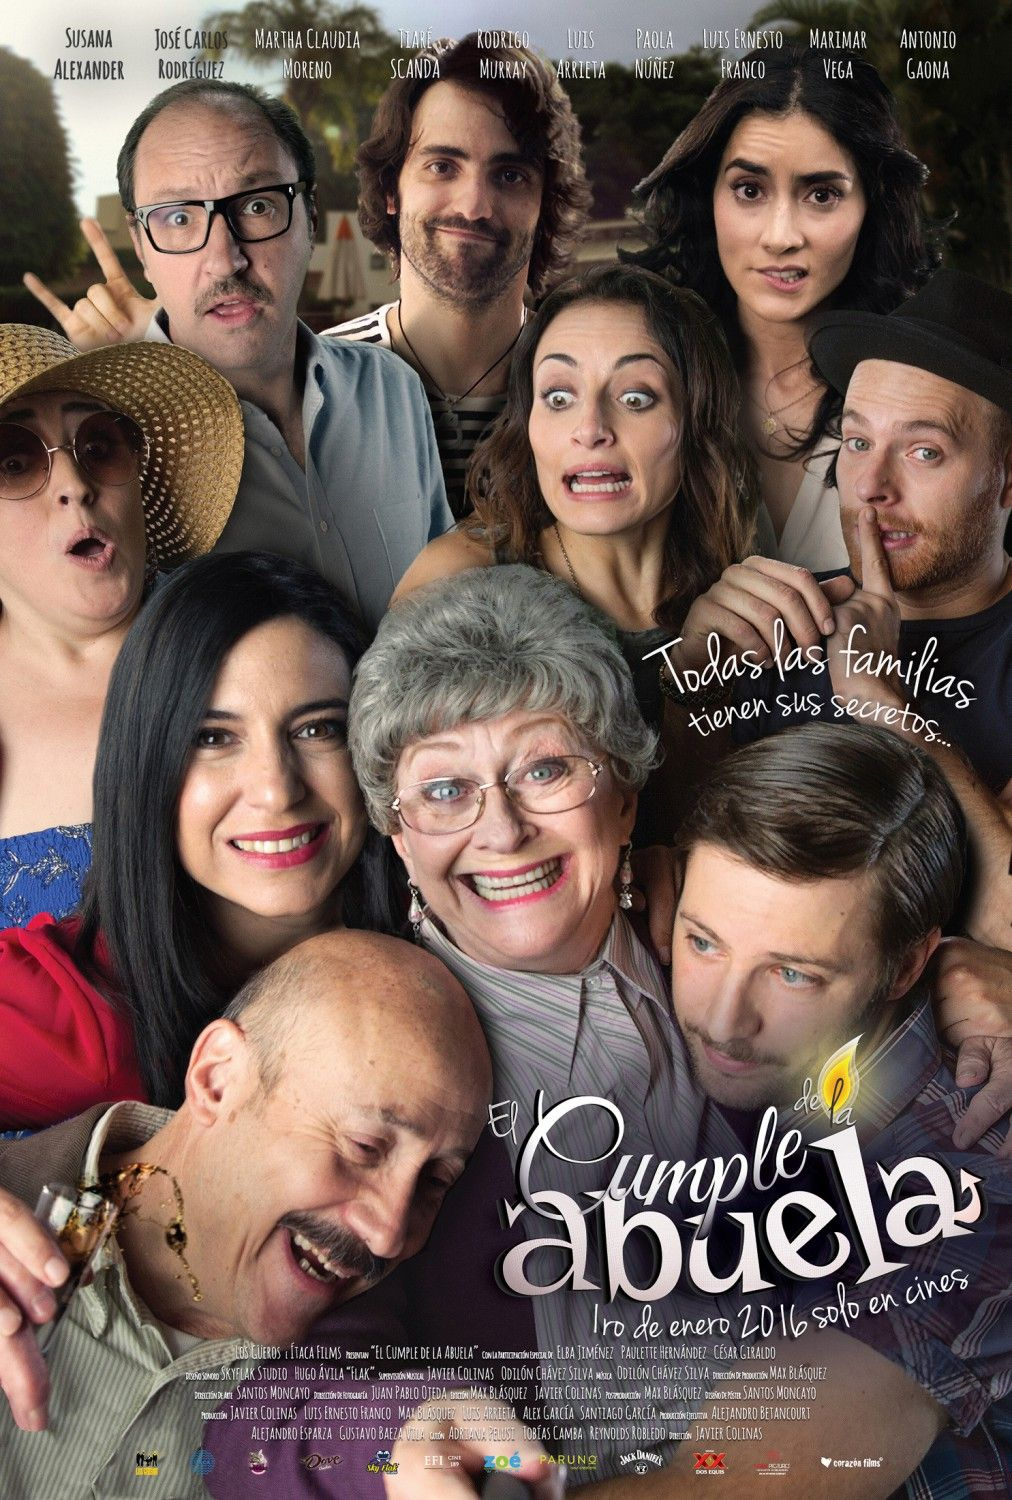 Return To The Main Poster Page For El Cumple De La Abuela 2 Of 2 Badass Movie Movies 2016 Internet Movies